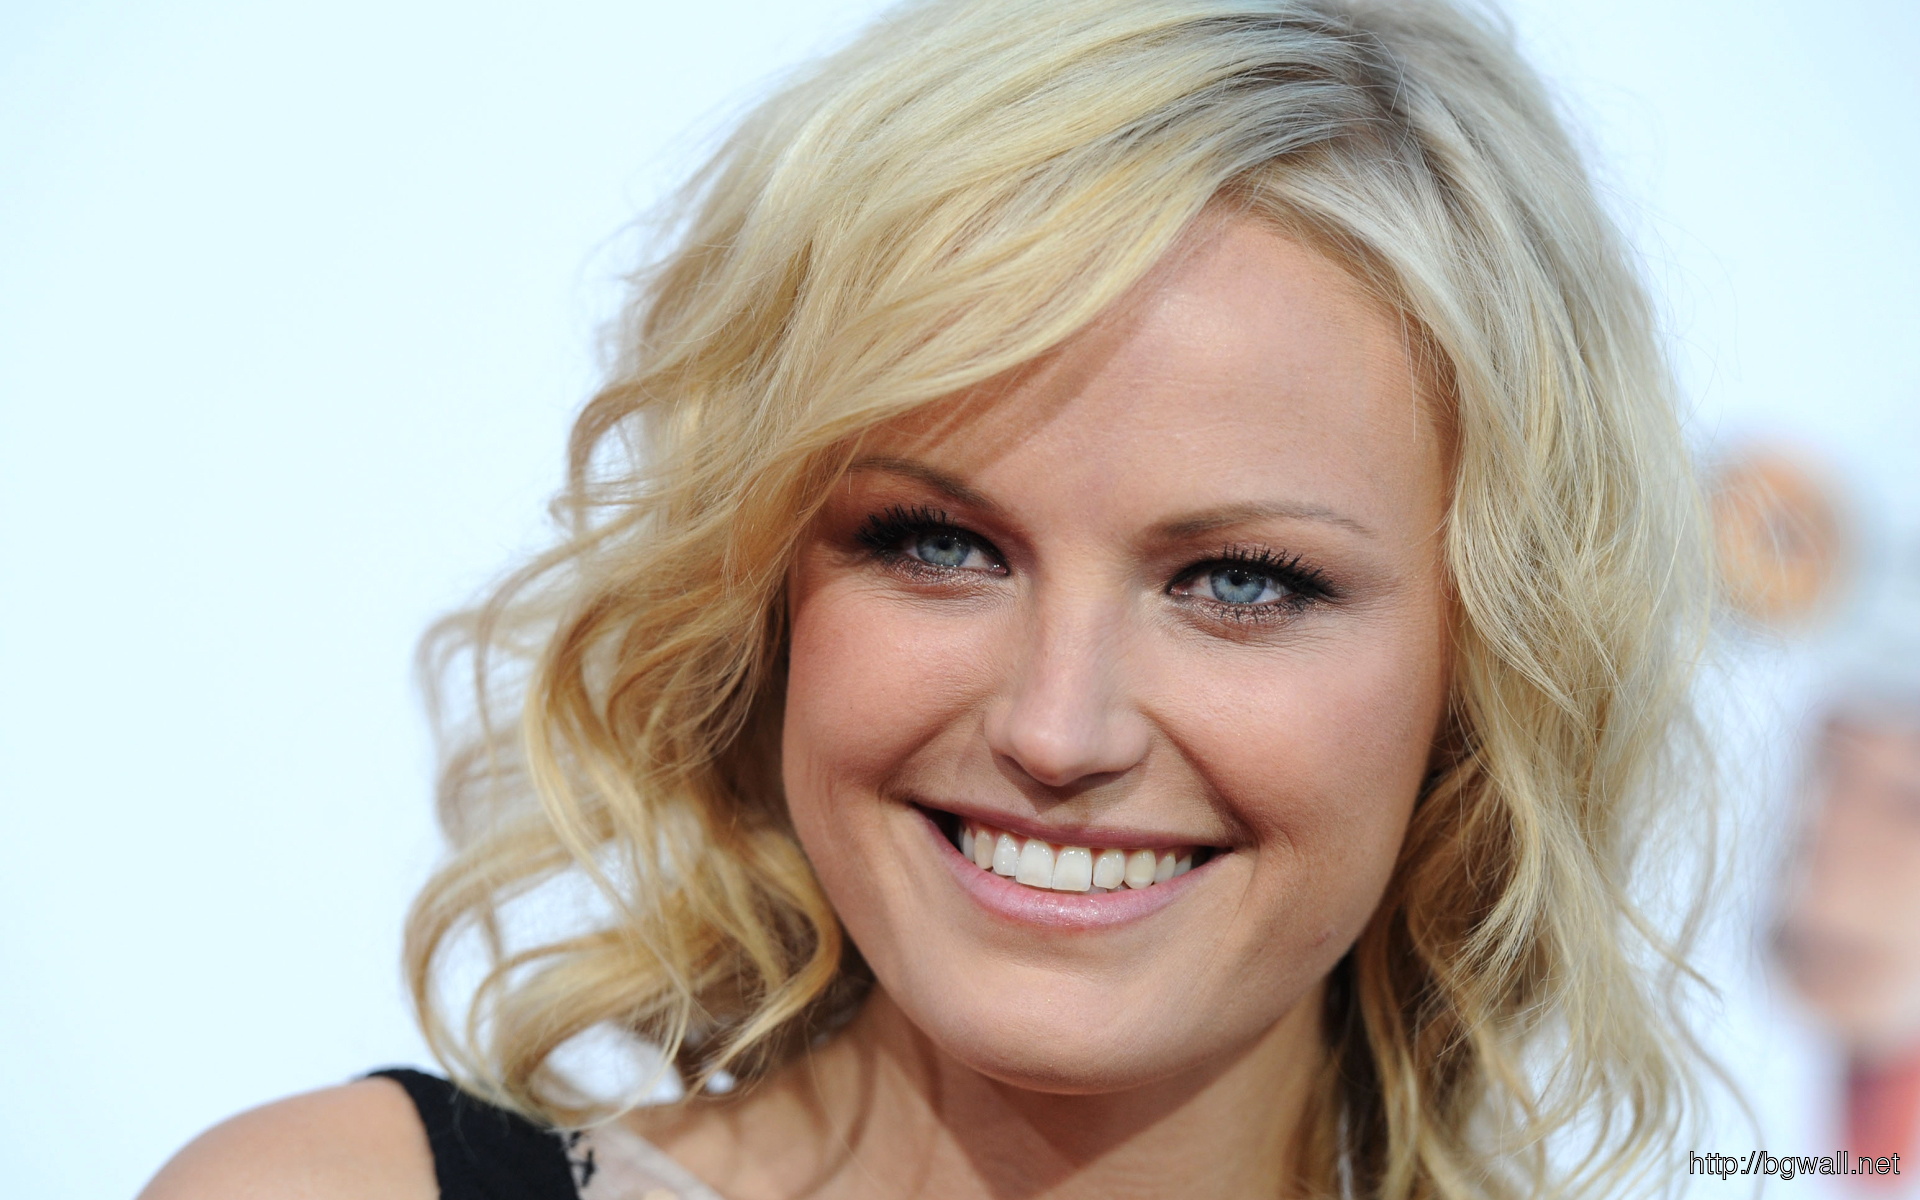 Malin Akerman Smile Wallpaper